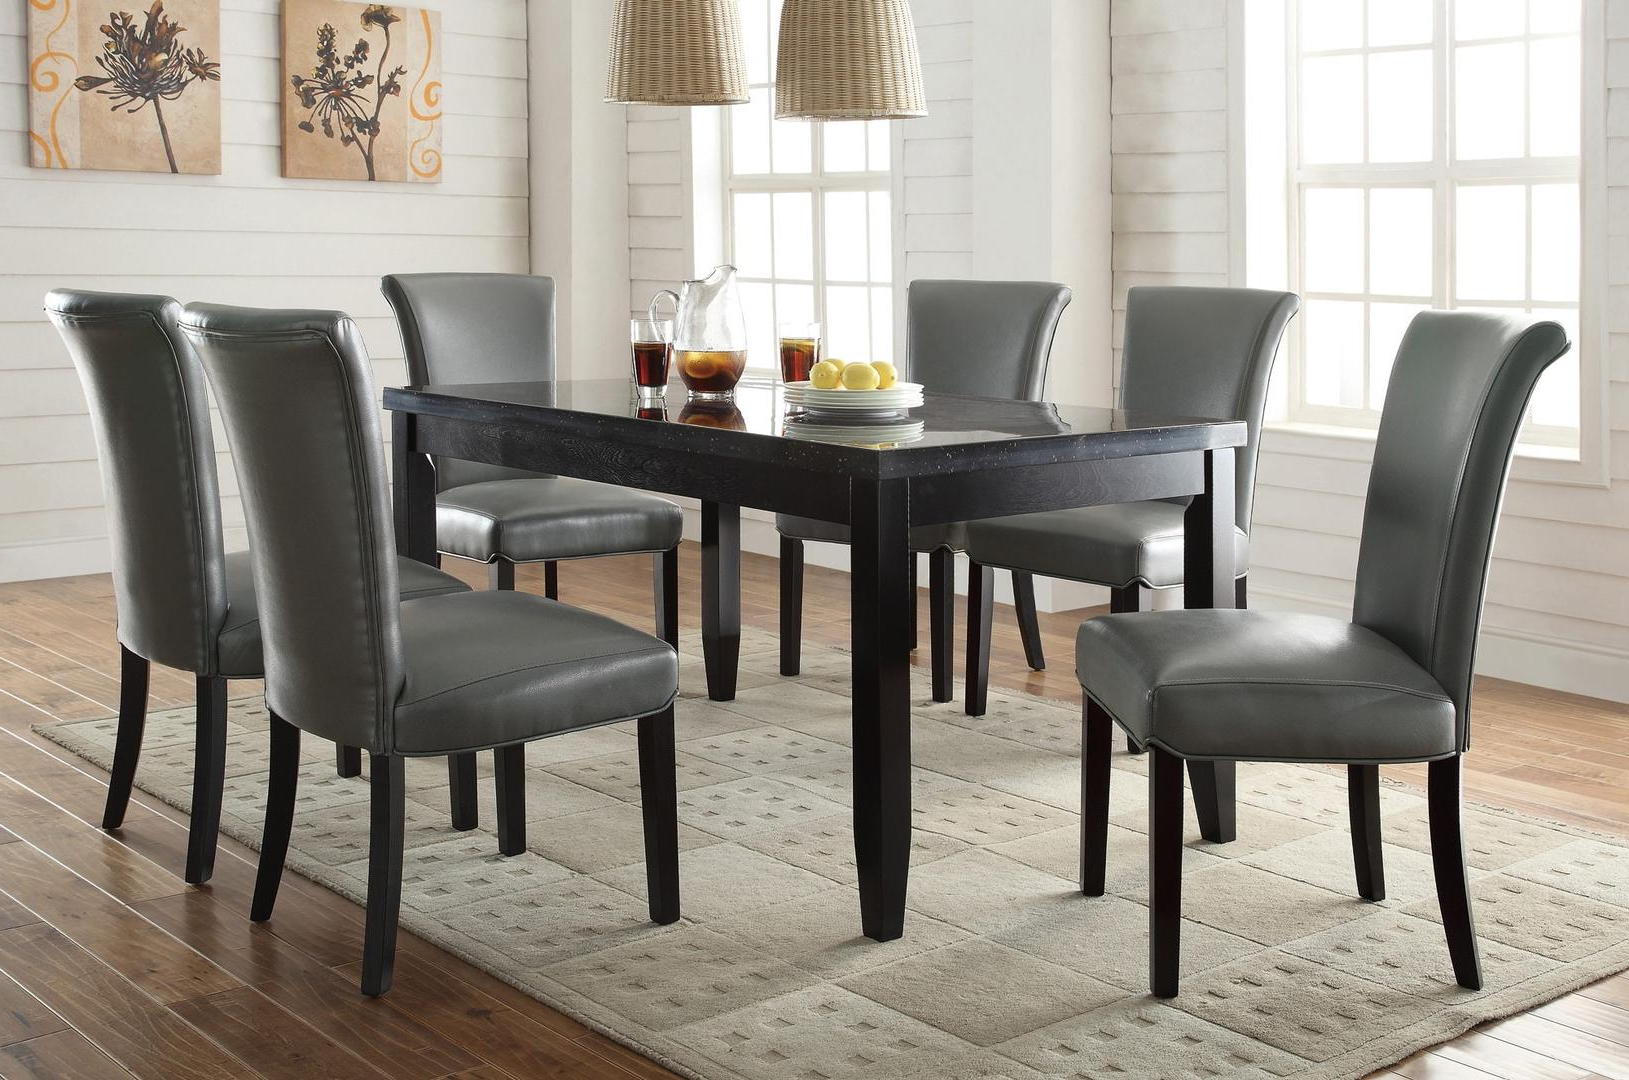 Coaster Newbridge Collection 103621 6Sc82 7 Piece Dining Pertaining To Fashionable Coaster Contemporary 6 Seating Rectangular Casual Dining Tables (View 16 of 30)